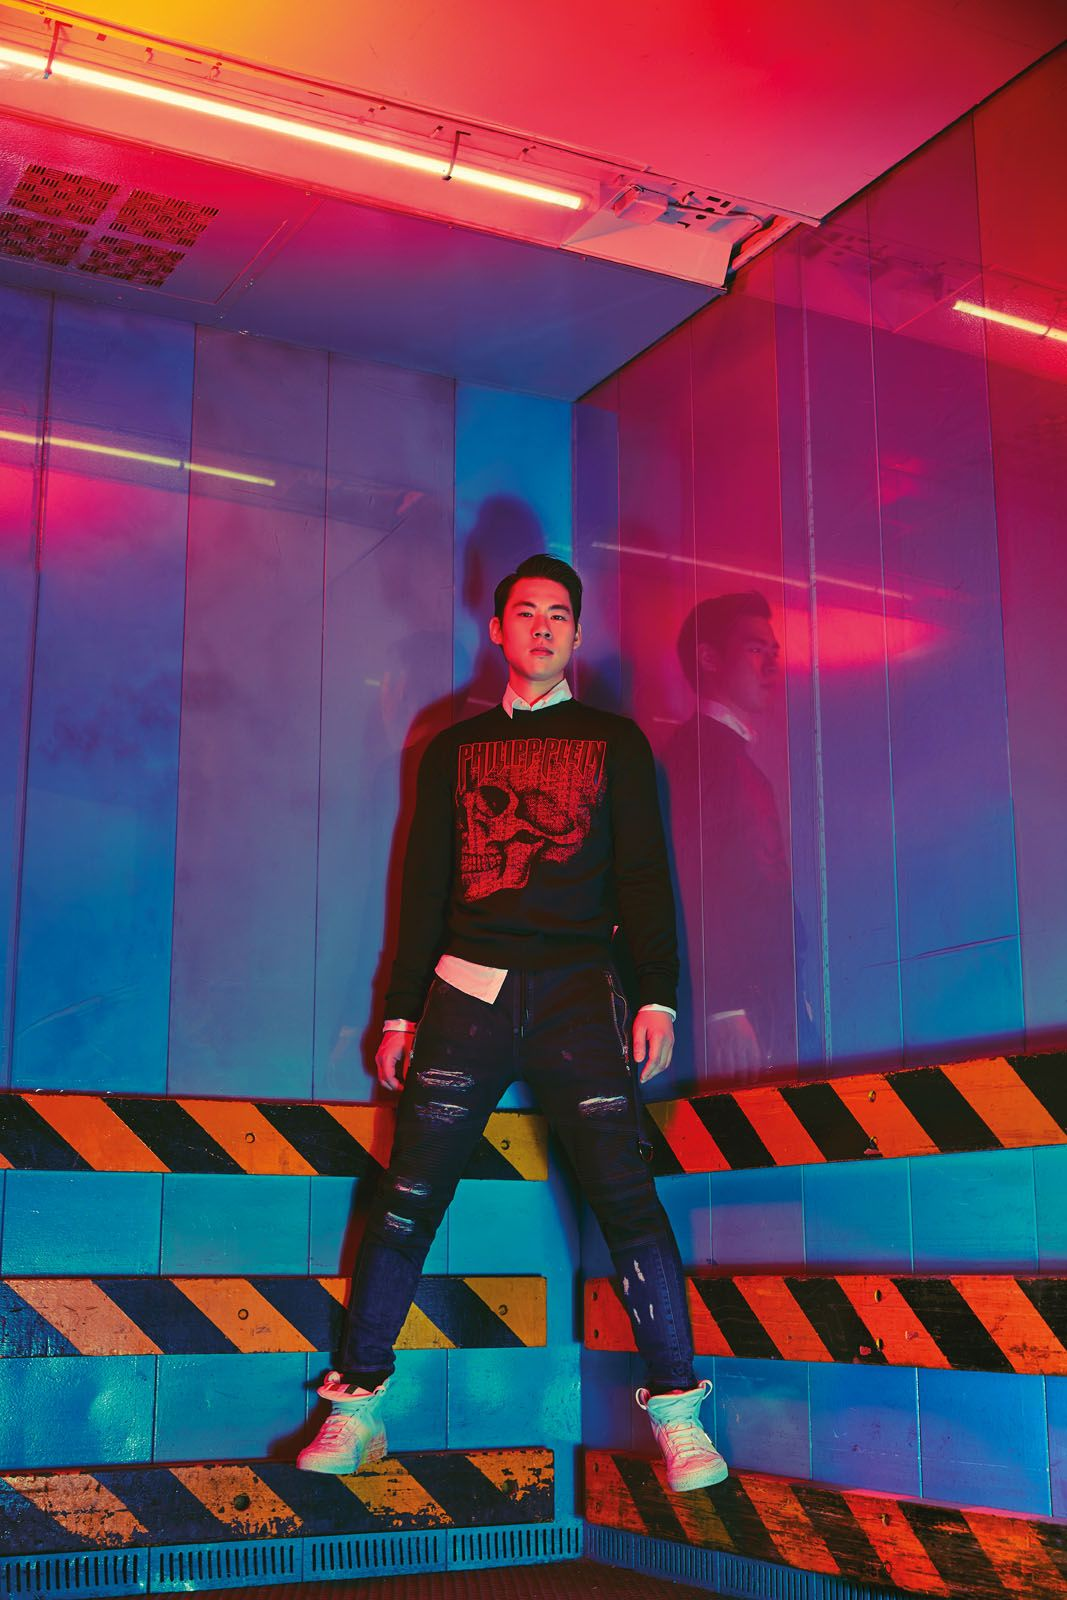 Ken wears printed cotton pullover, cotton shirt, distressed denim jeans and leather high-tops with paint splatter details